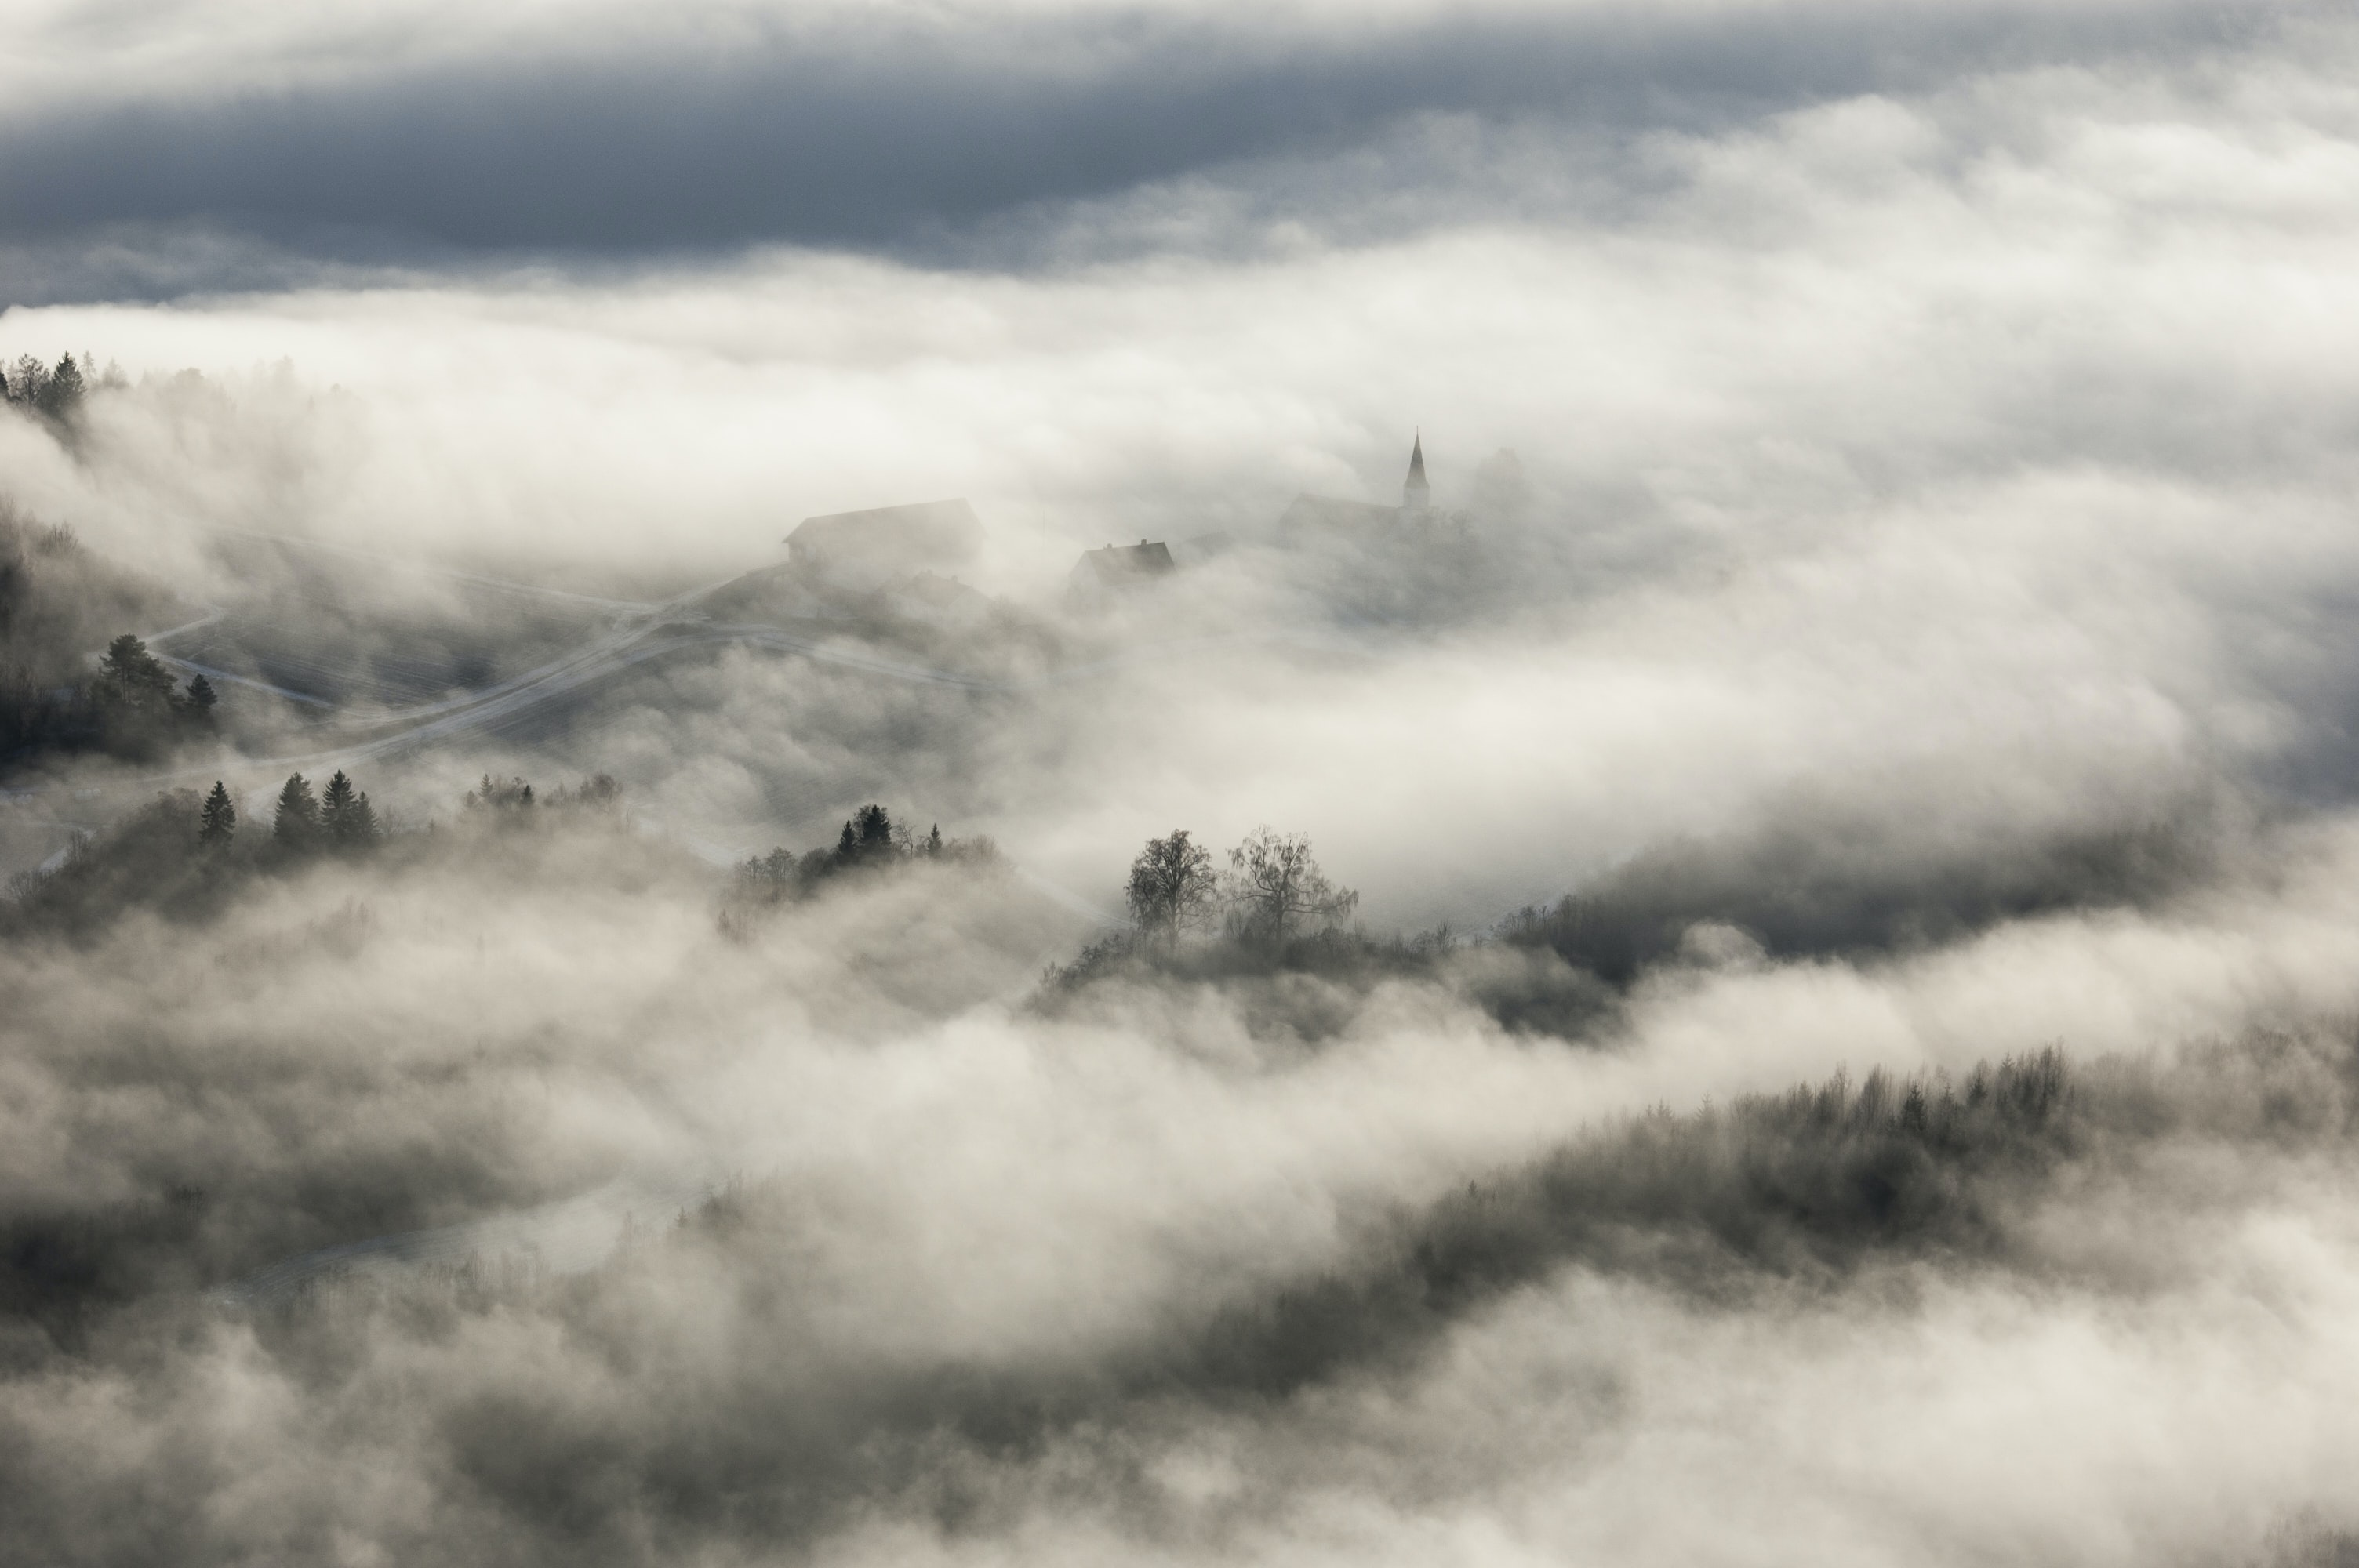 Village homes and town trees hidden by fog on a misty morning